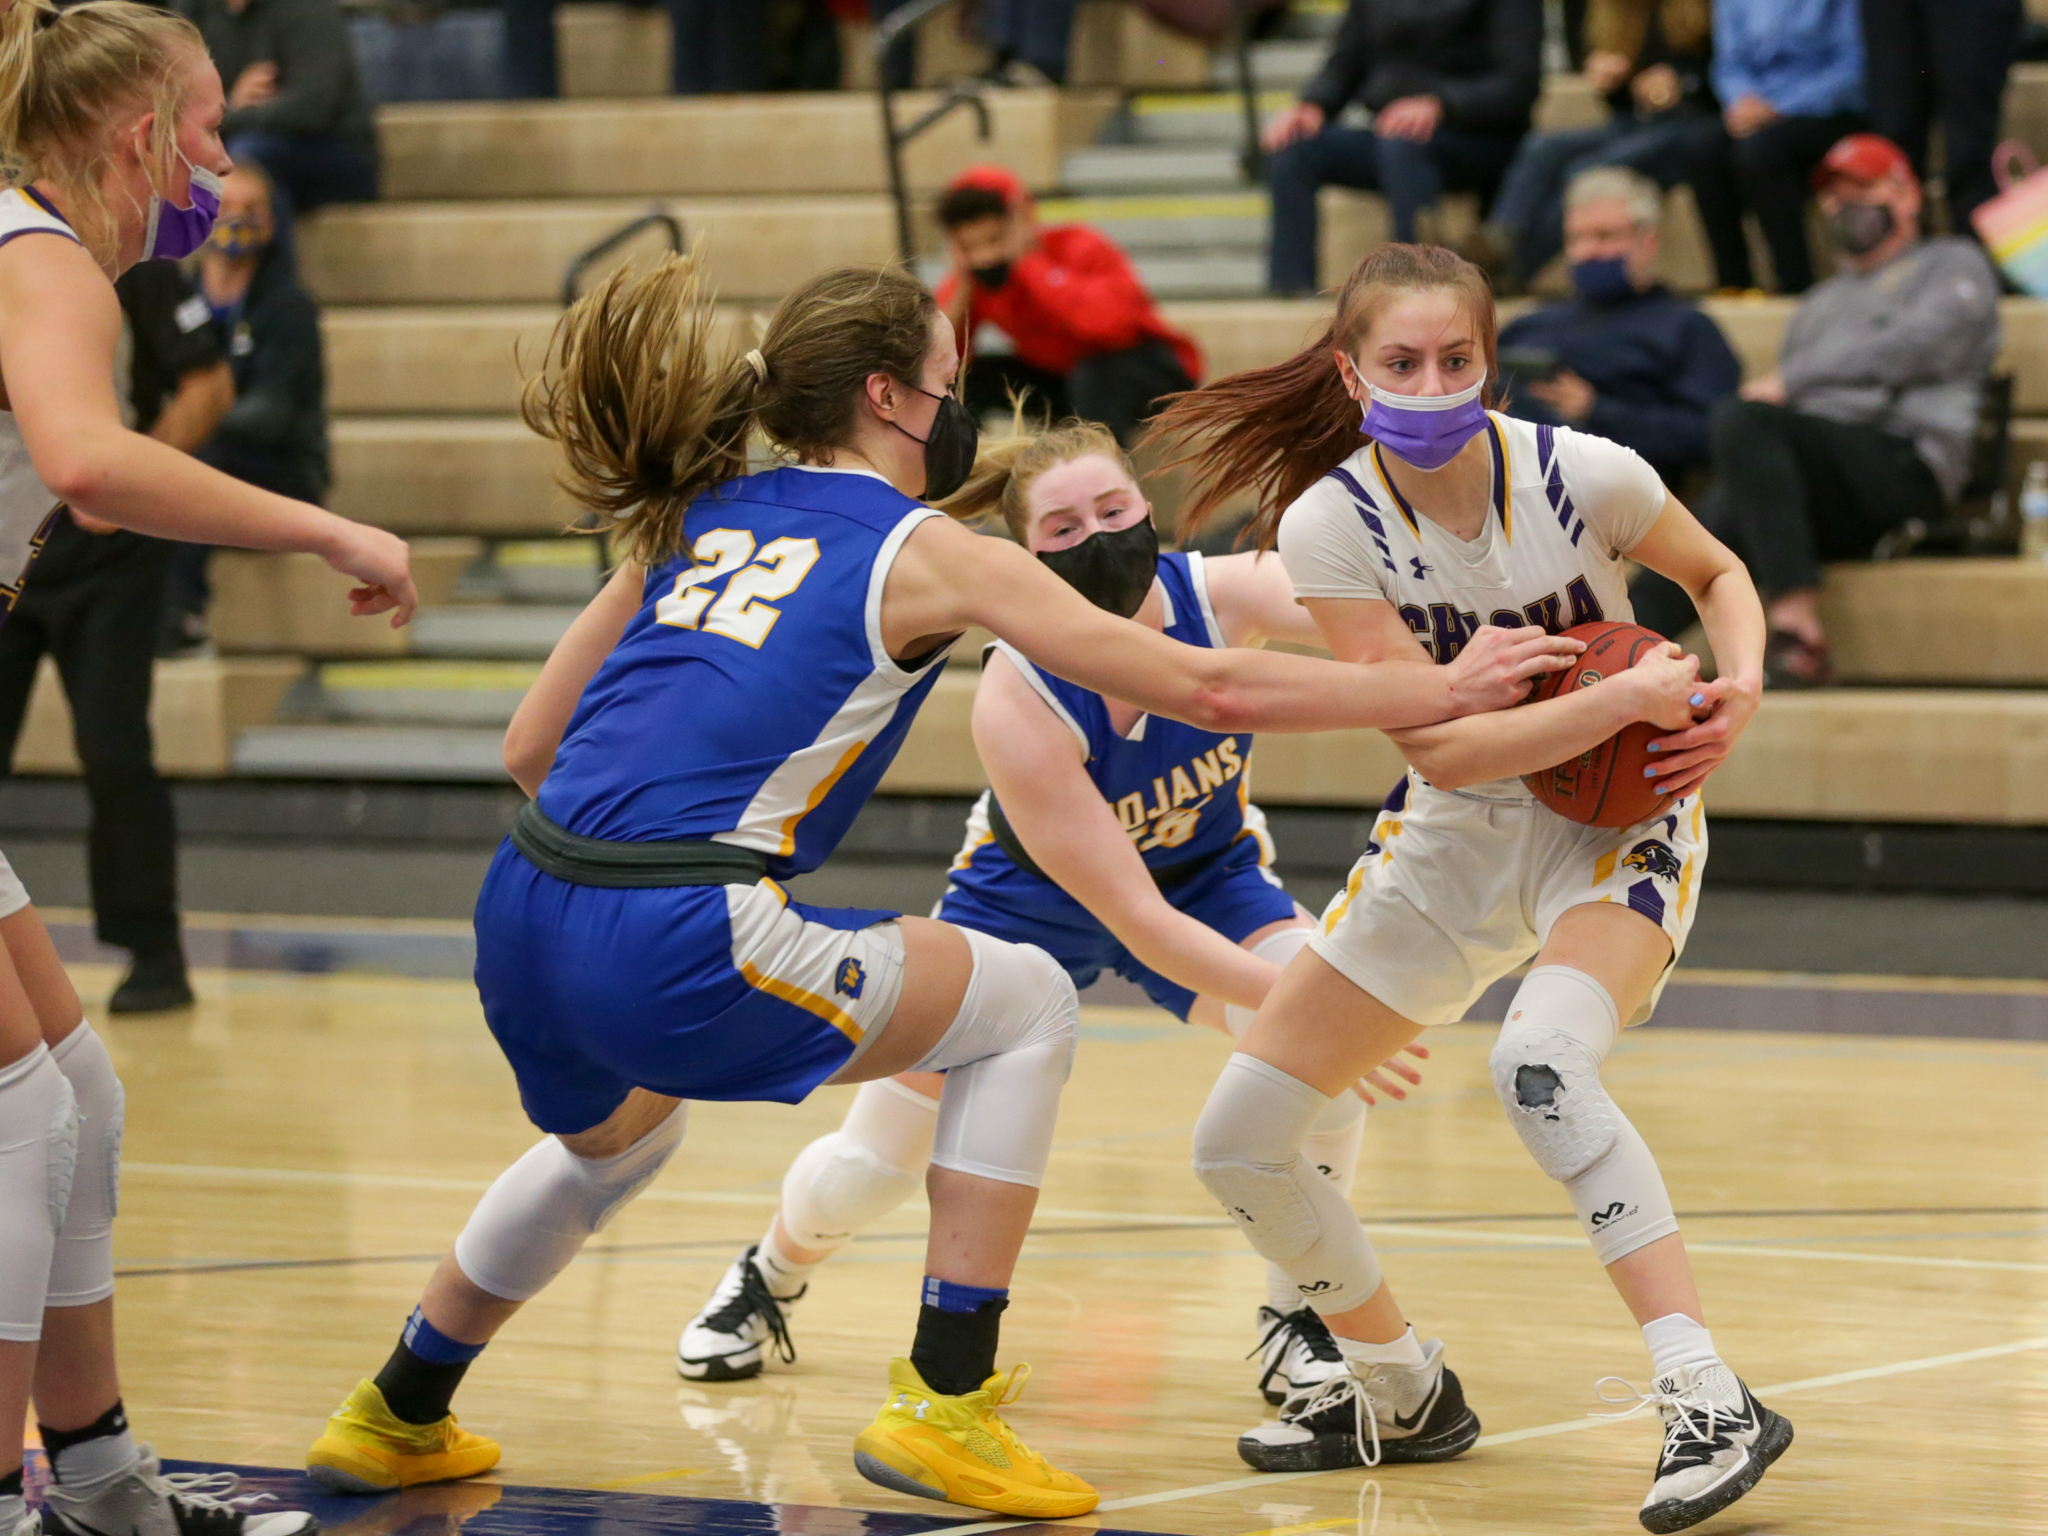 Chaska's Kelsey Willems secures a defensive rebound late in the game against Wayzata. The Hawks rallied in the second half for a 61-59 victory over the Trojans. Photo by Jeff Lawler, SportsEngine